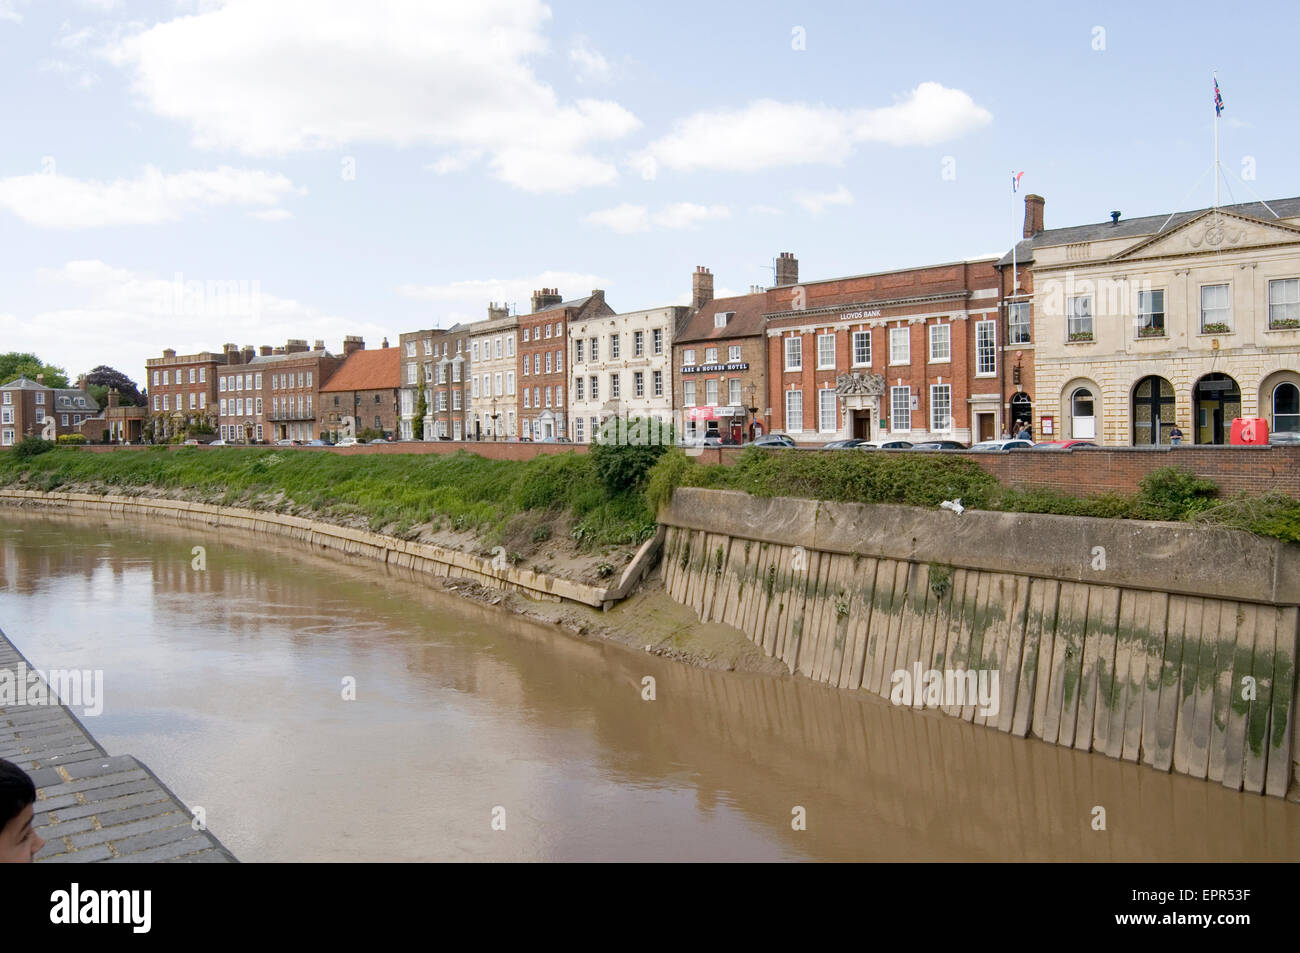 wisbech  Fens of Cambridgeshire England  tidal River Nene uk - Stock Image